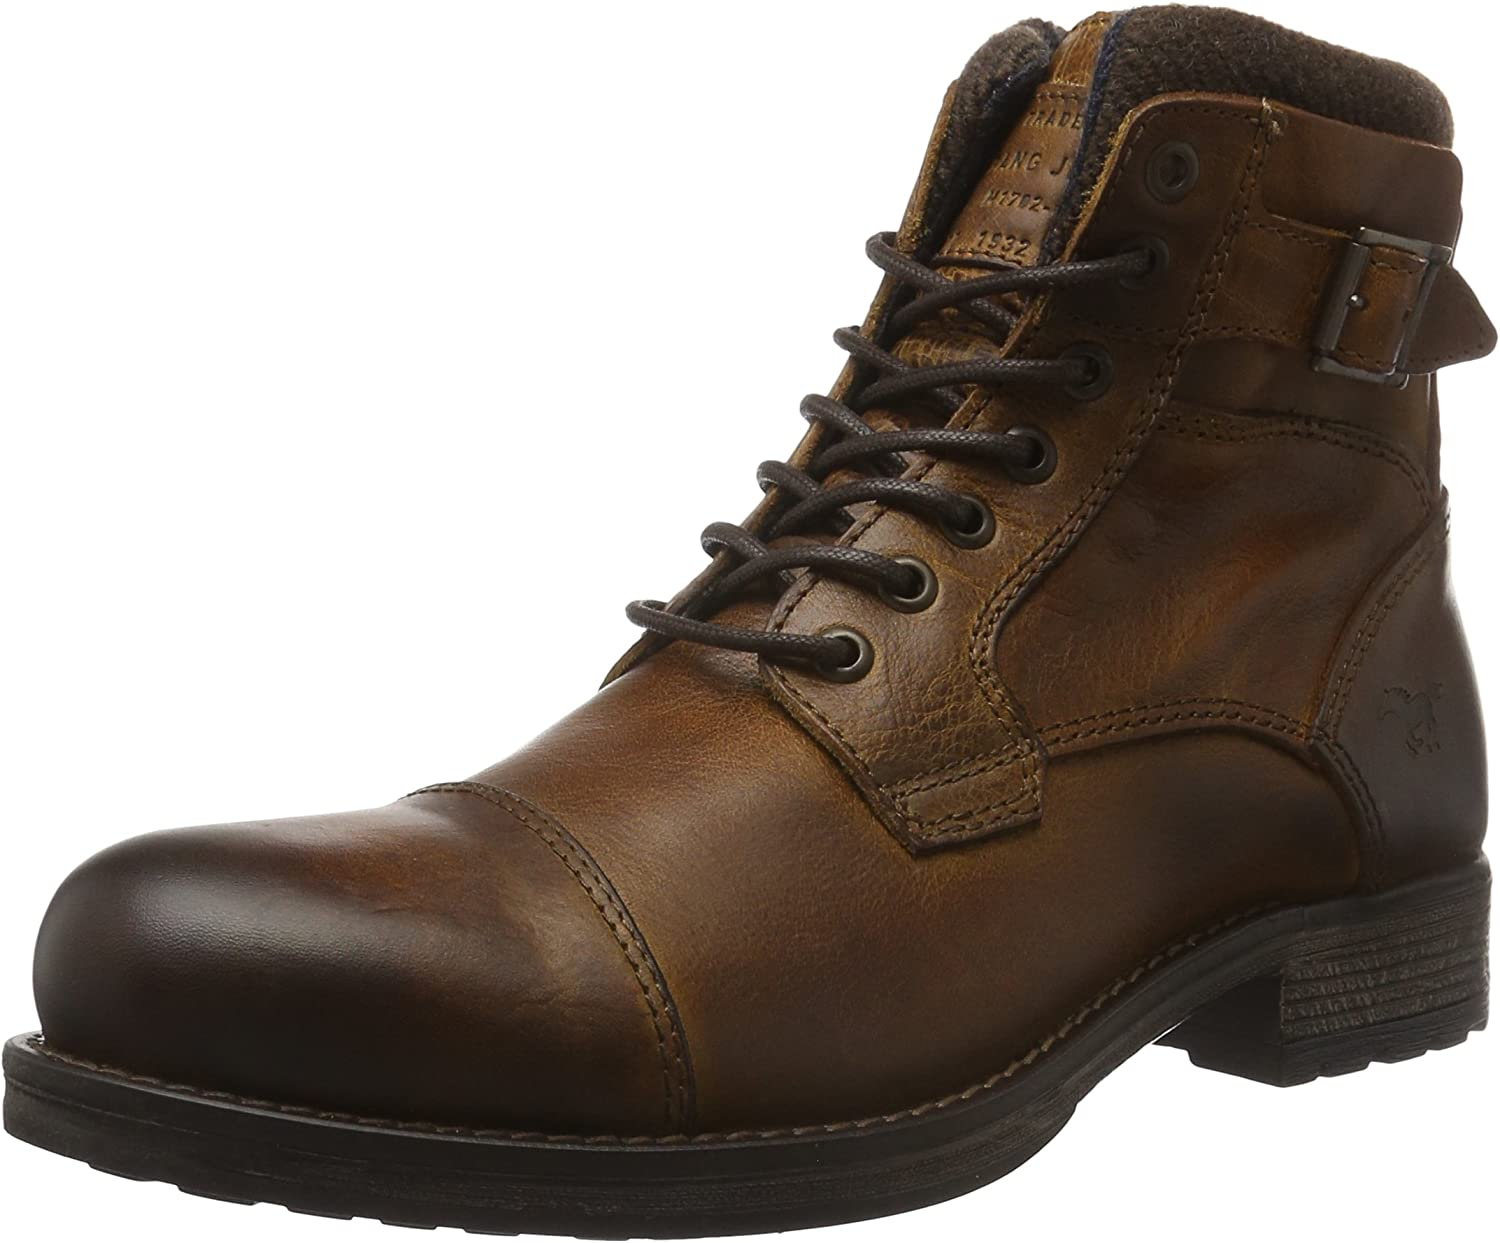 Mustang Men's's Schnür Ankle Boots